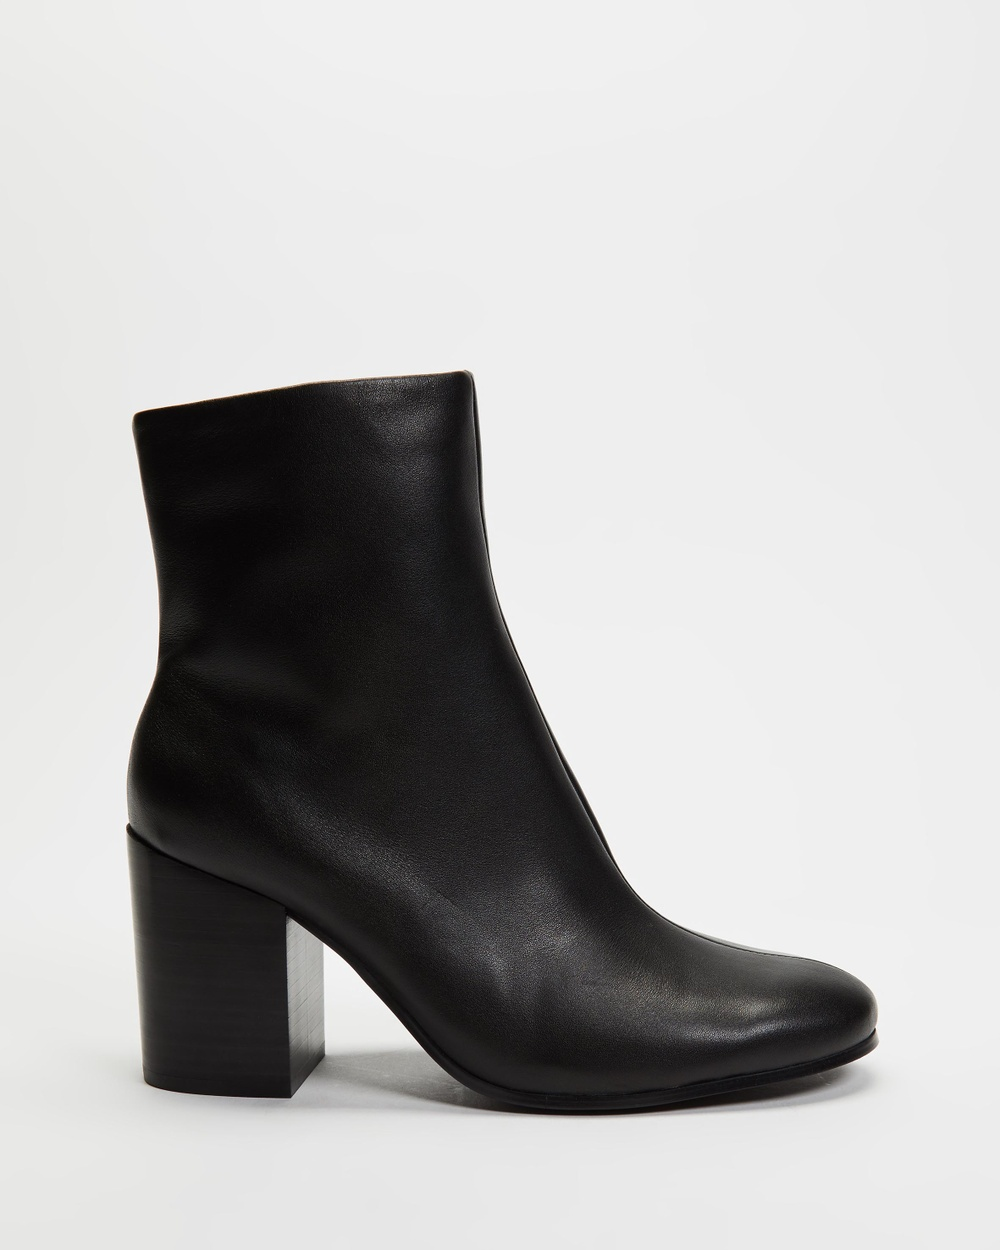 AERE Soft Leather Block Heel Ankle Boots Black Leather